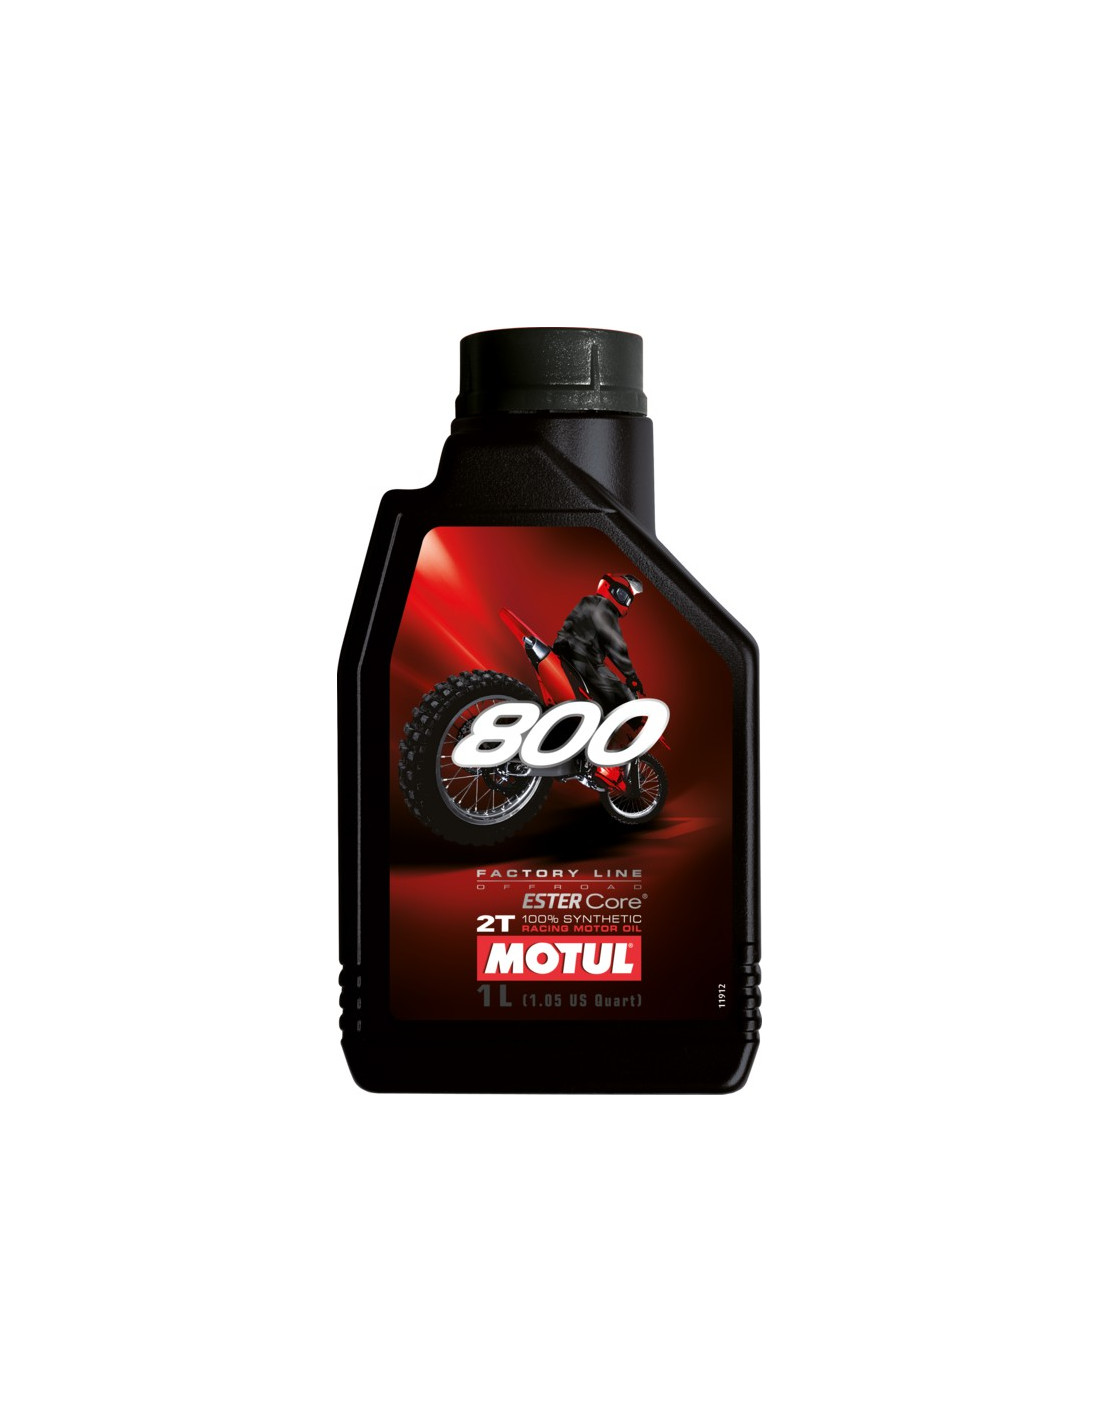 botella-motul-800-2t-fl-off-road-1l